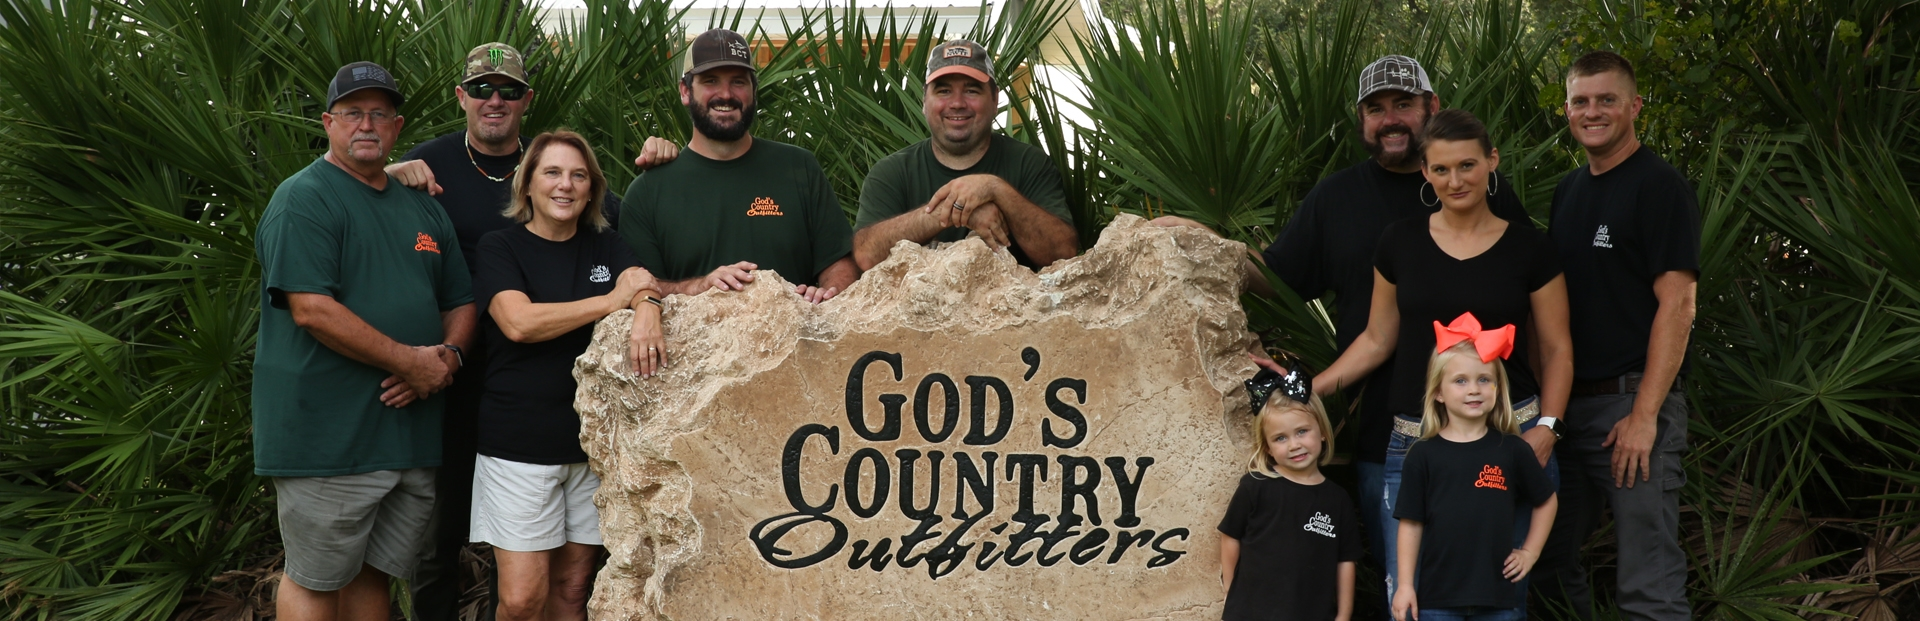 About God's Country Outfitters